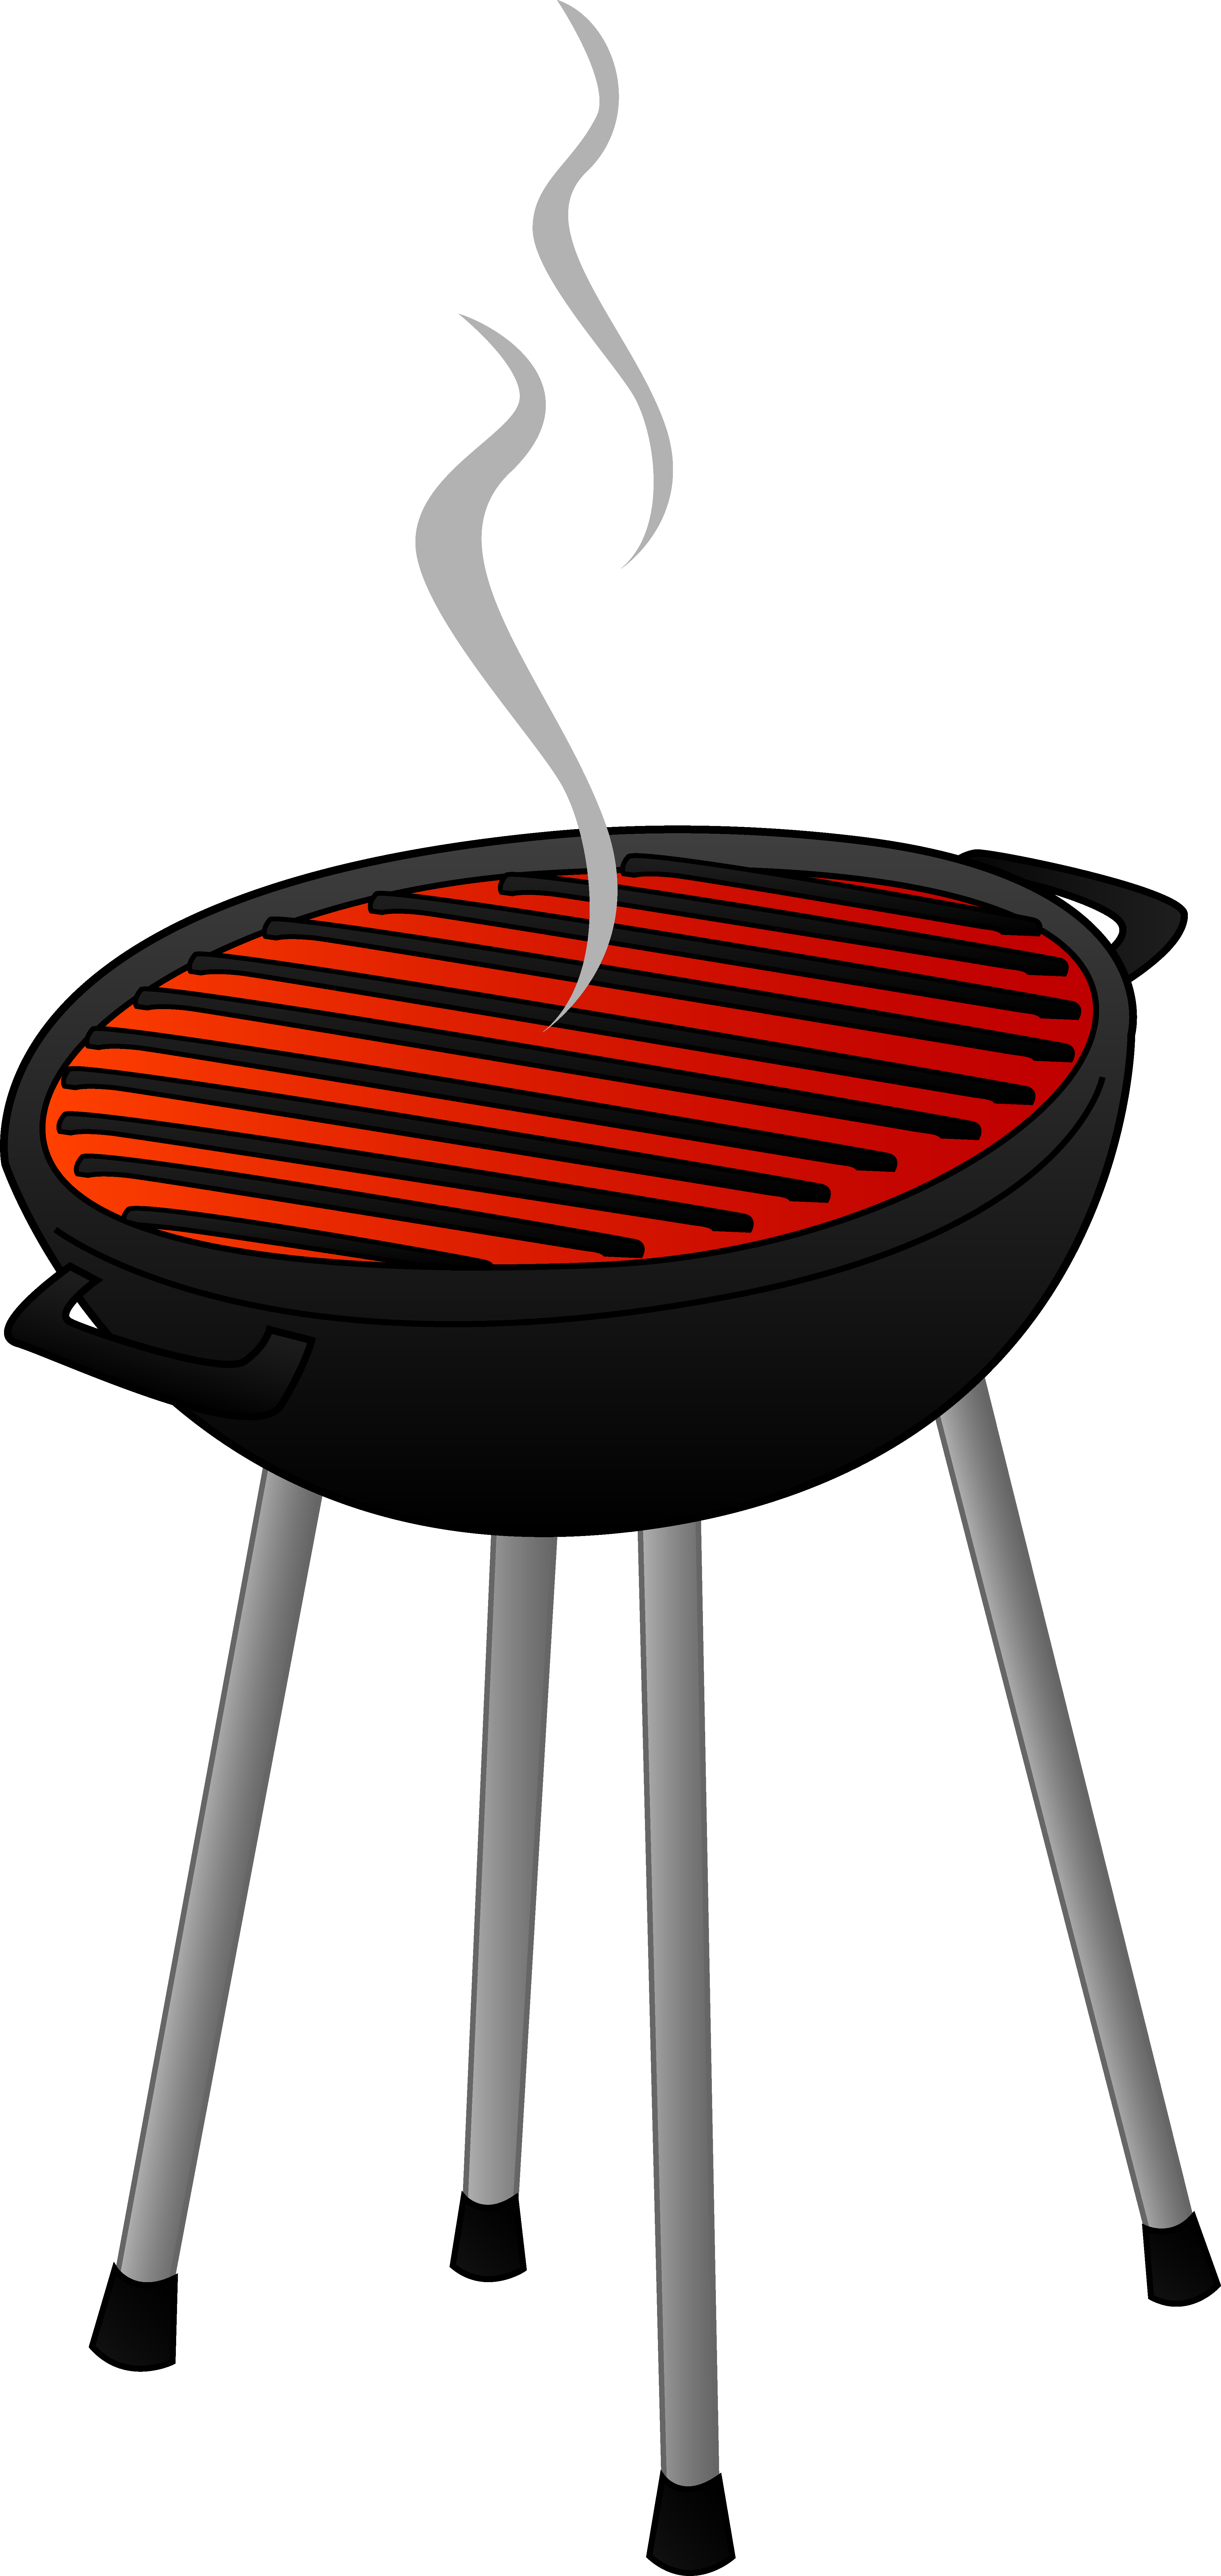 Pin by mary barnes. Stamp clipart bbq